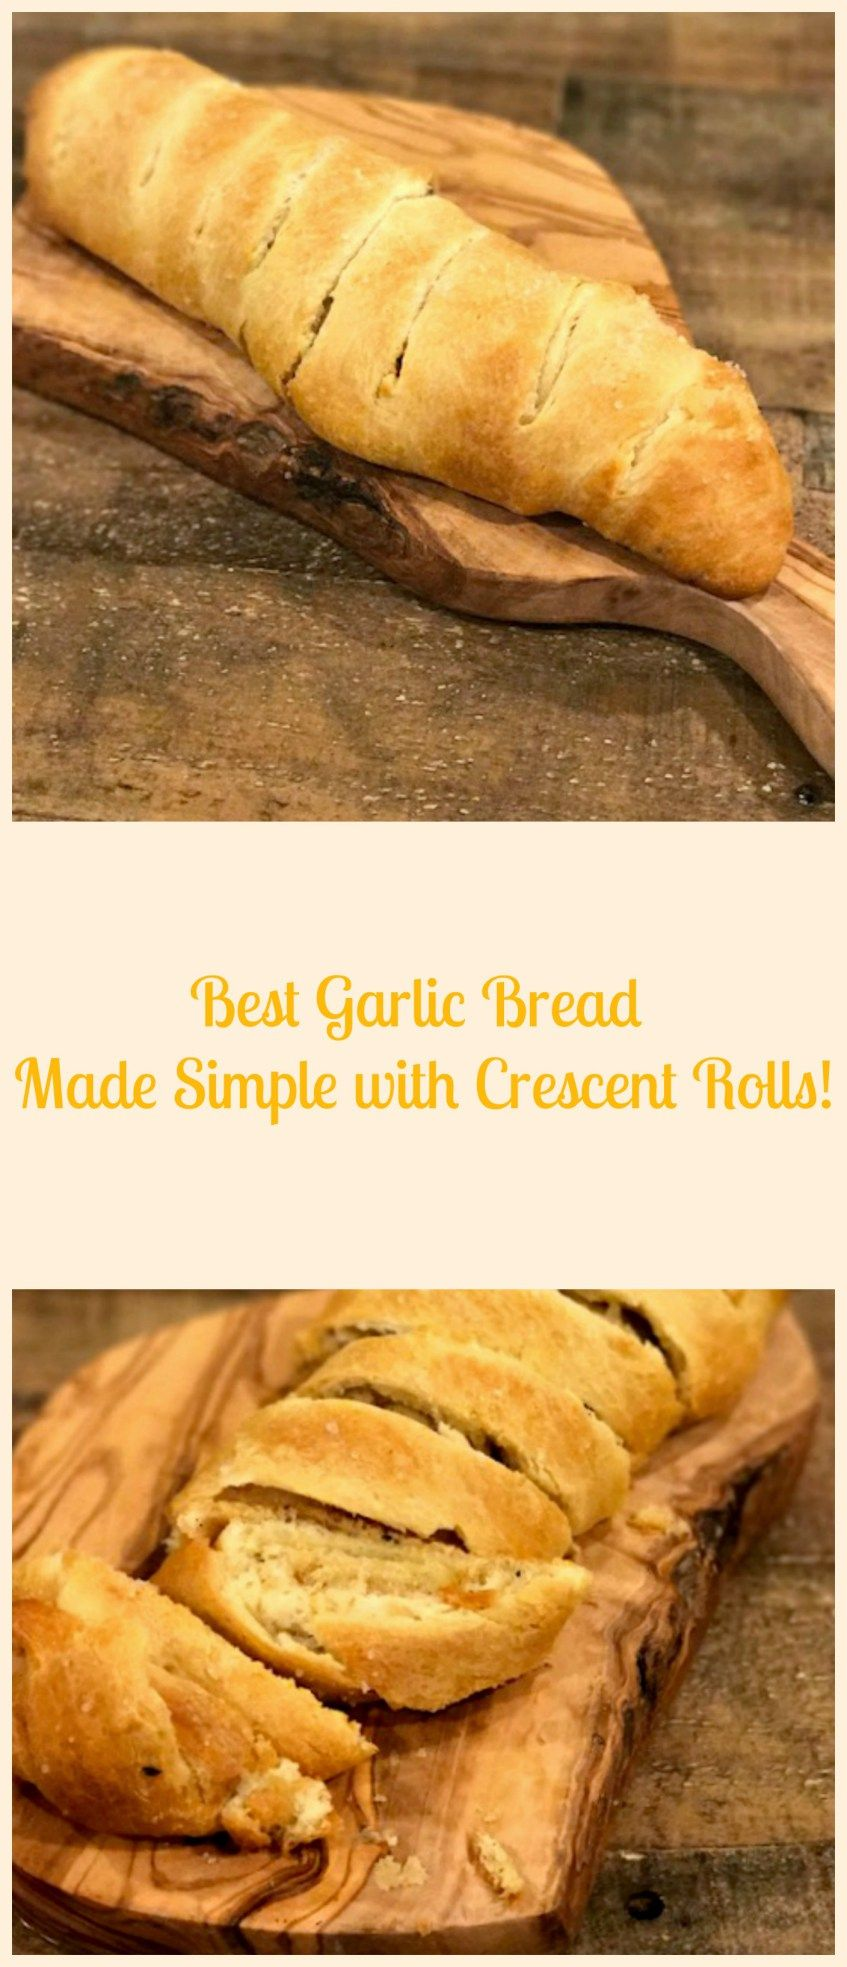 Best garlic bread made simply with crescent rolls recipe